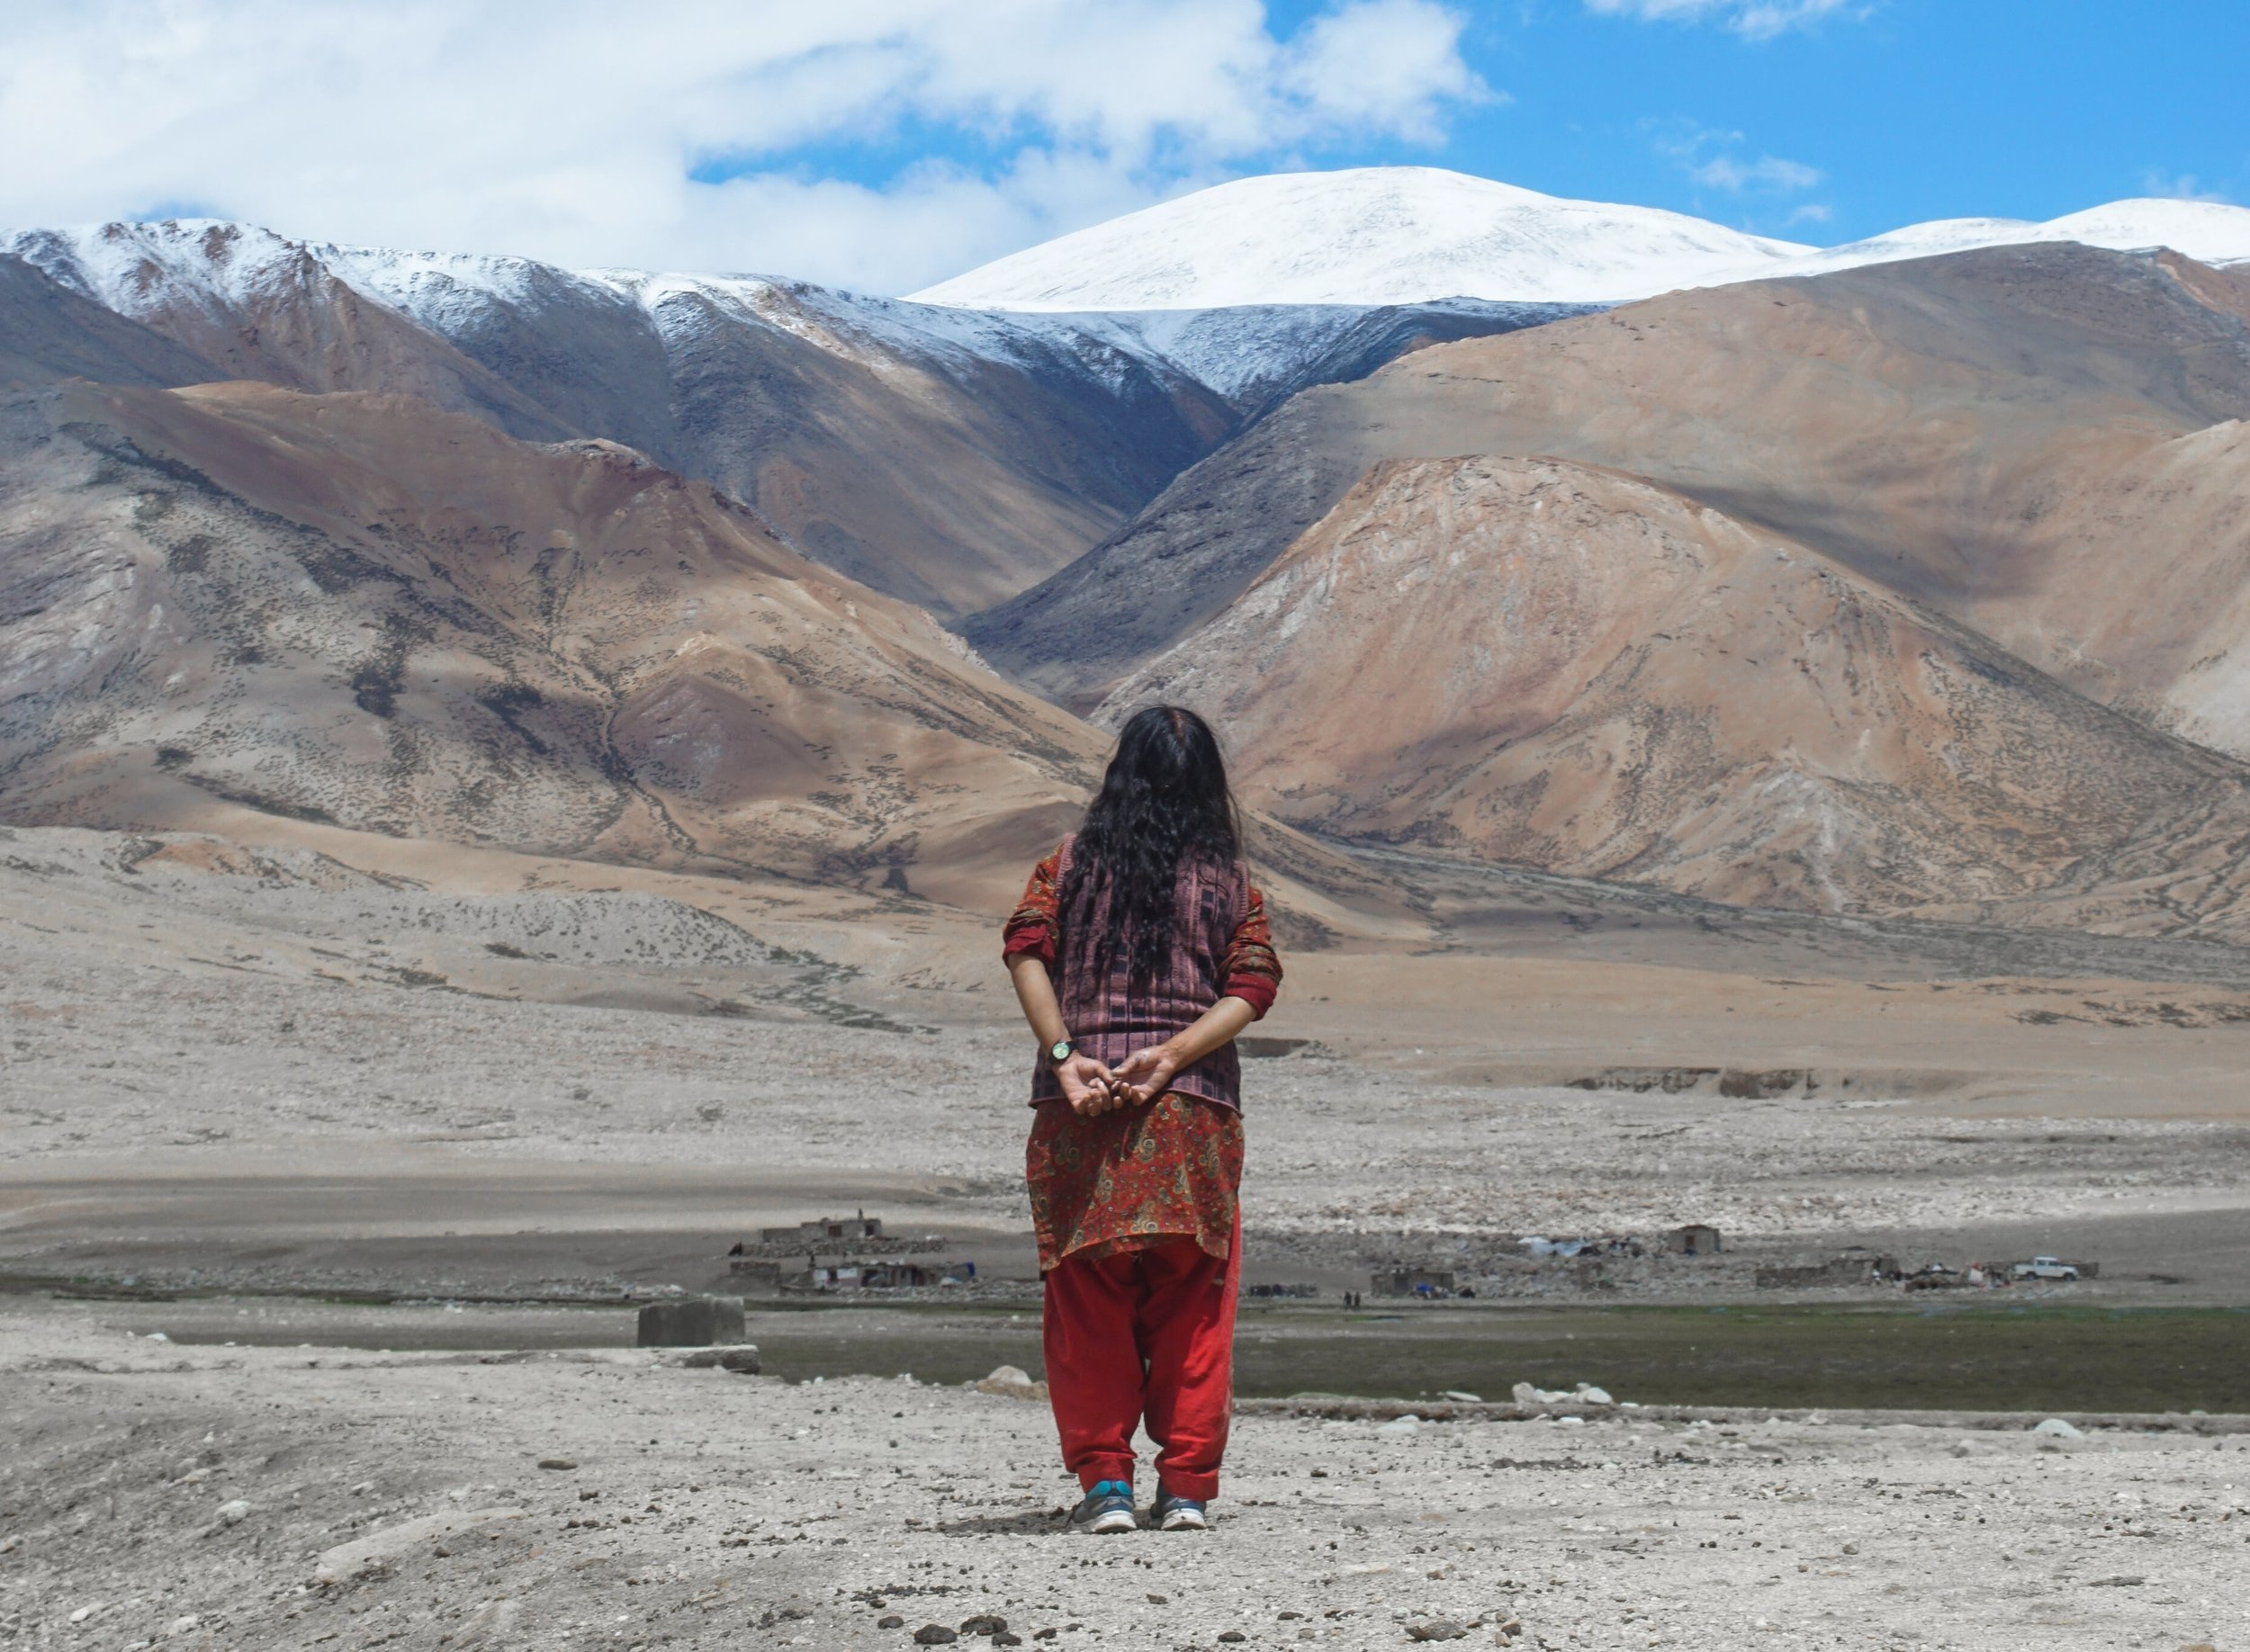 Dolma looks in the horizon and notices the changes in the Himalayan peaks.